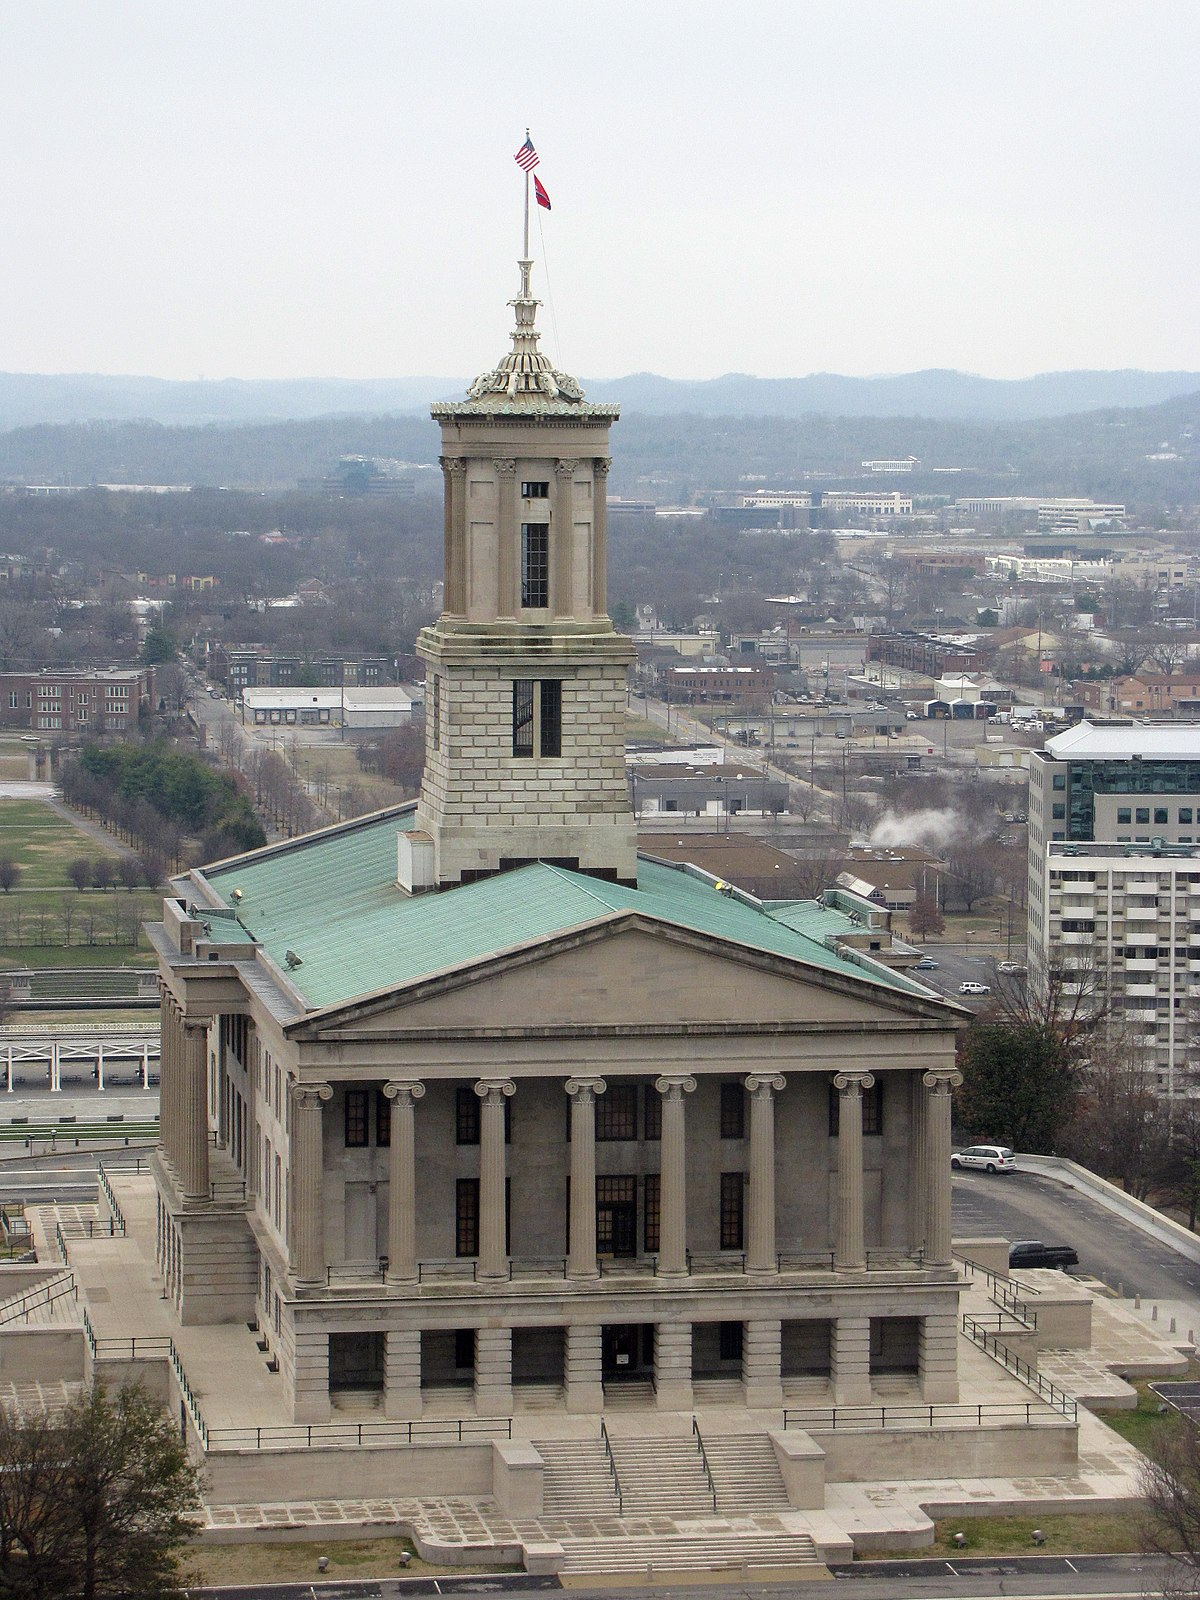 tennessee state capitol nashville building history tn wikimedia wikipedia 2009 states file euthman legislature tower cupola towers commons volunteer aerial